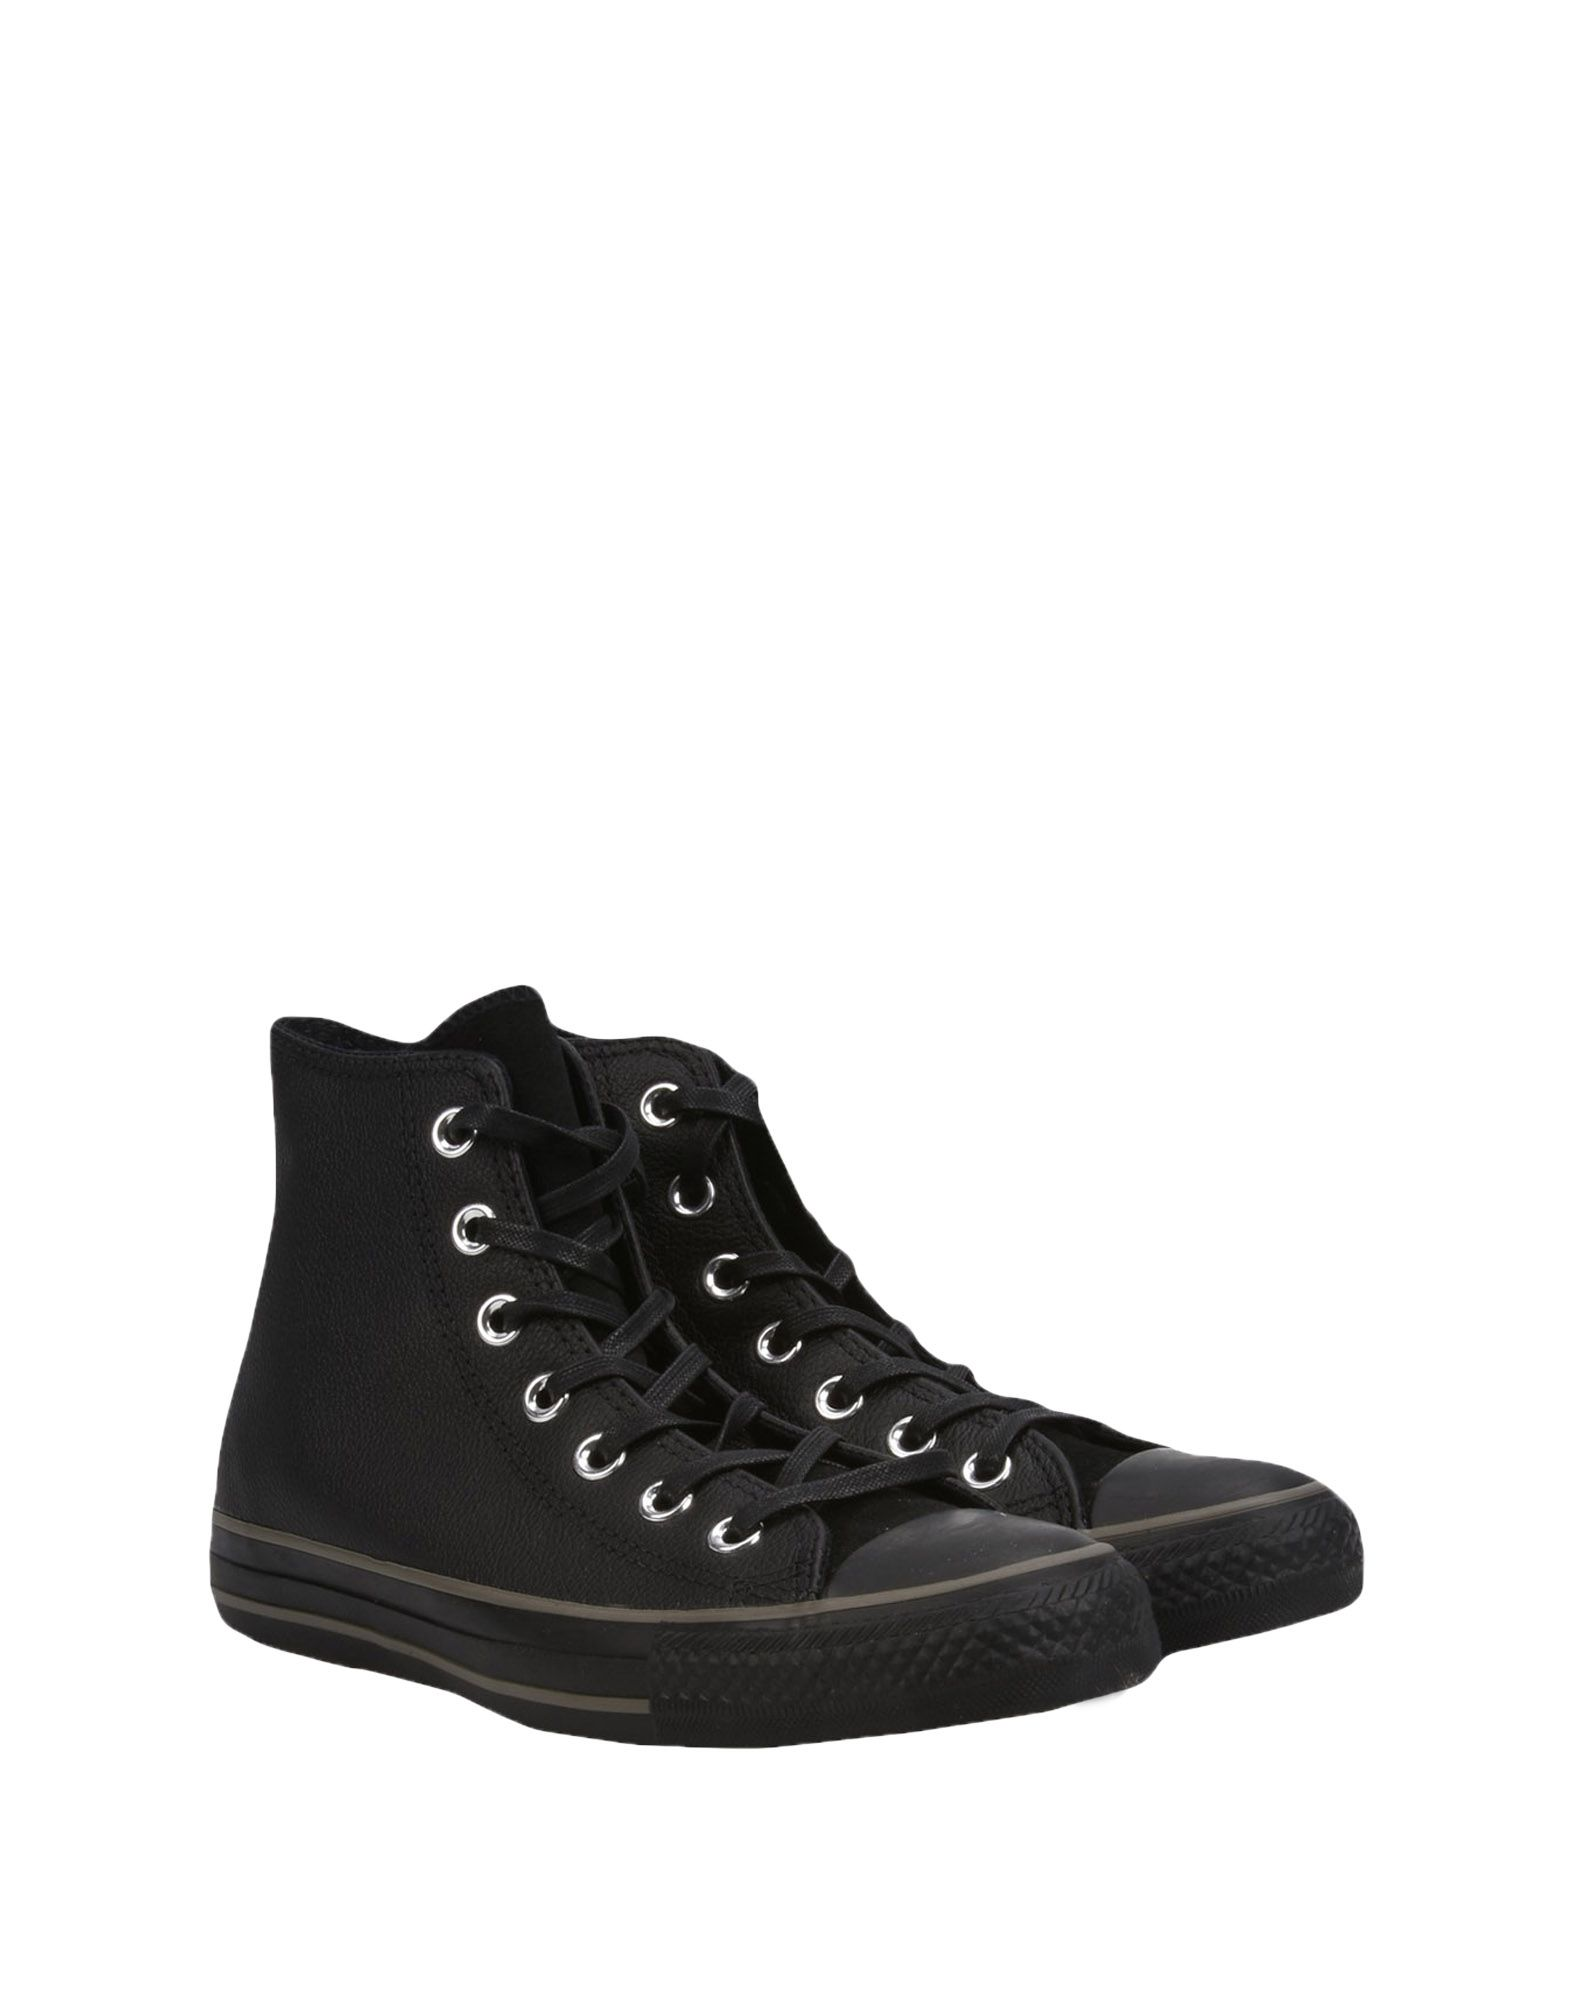 Sneakers Converse All Star Ct As Hi Leather/Suede - Femme - Sneakers Converse All Star sur